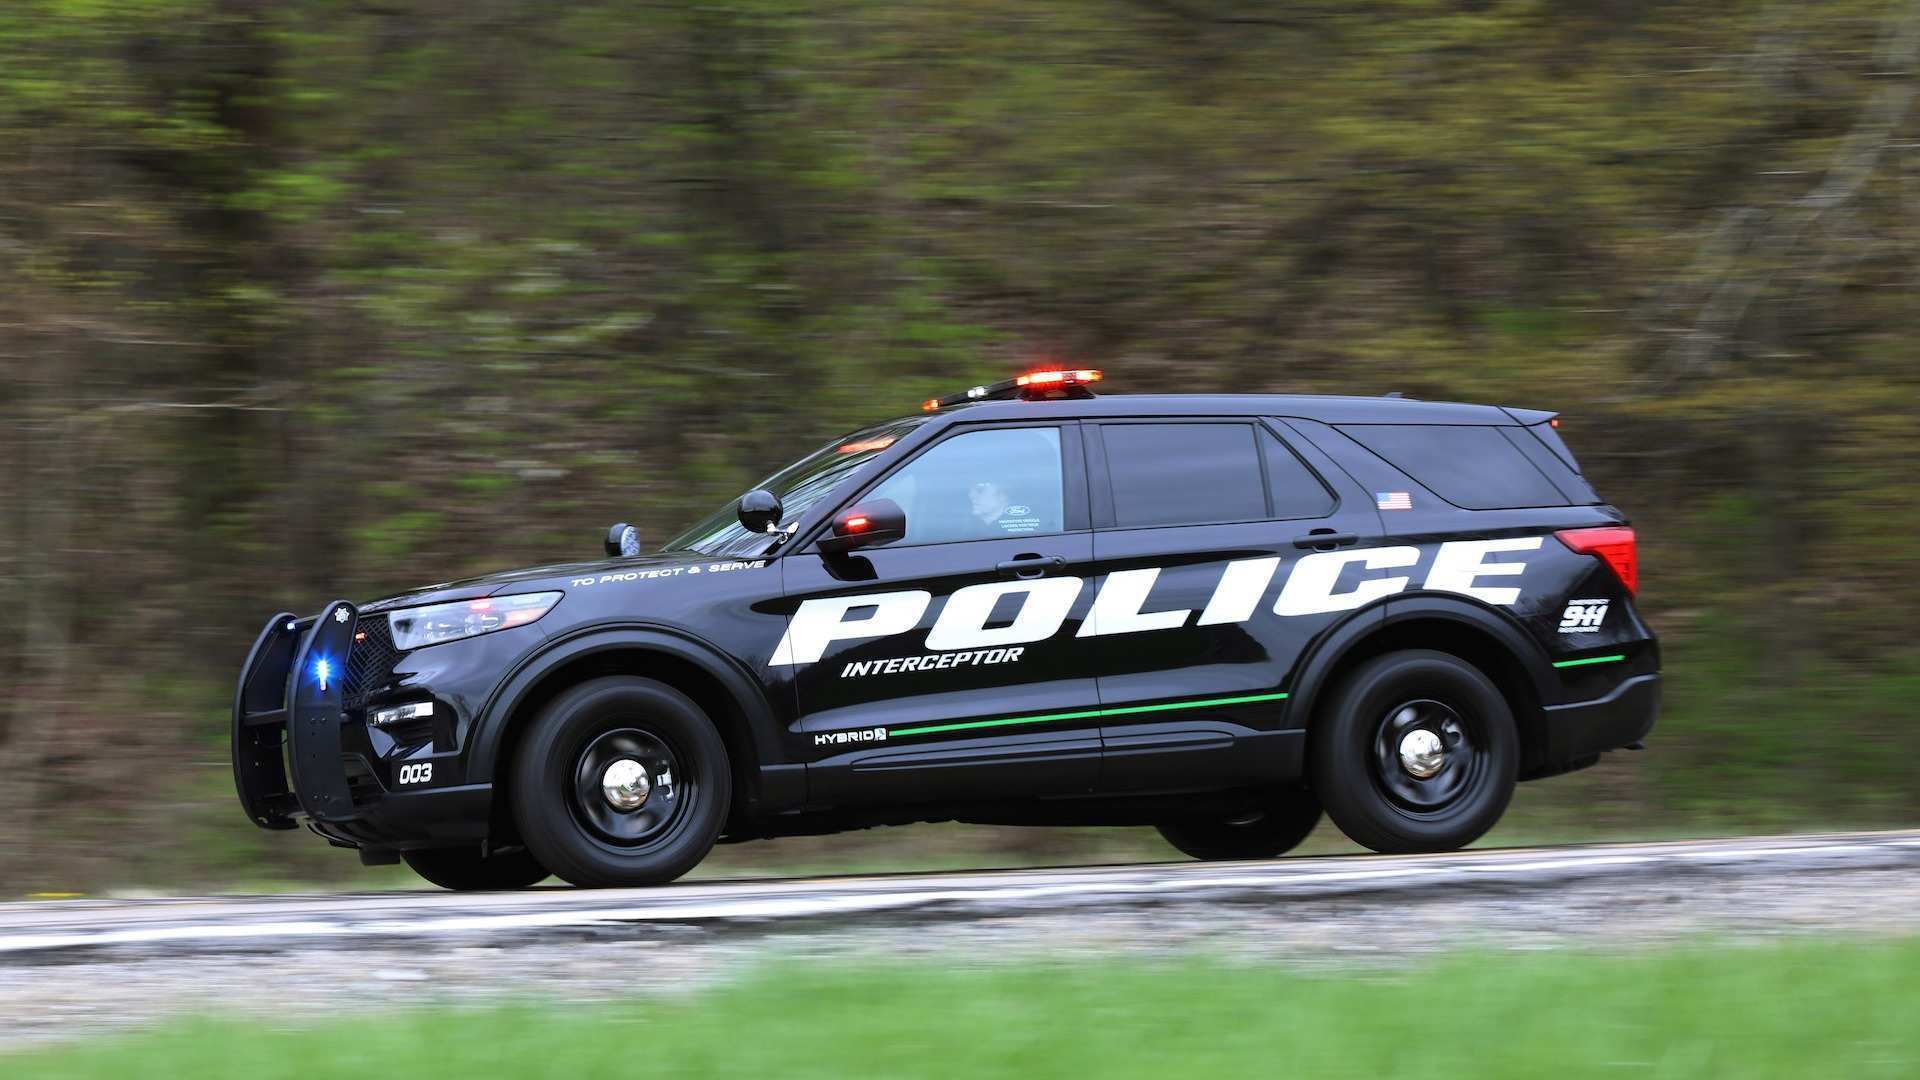 37 The Best 2020 Ford Police Interceptor Overview